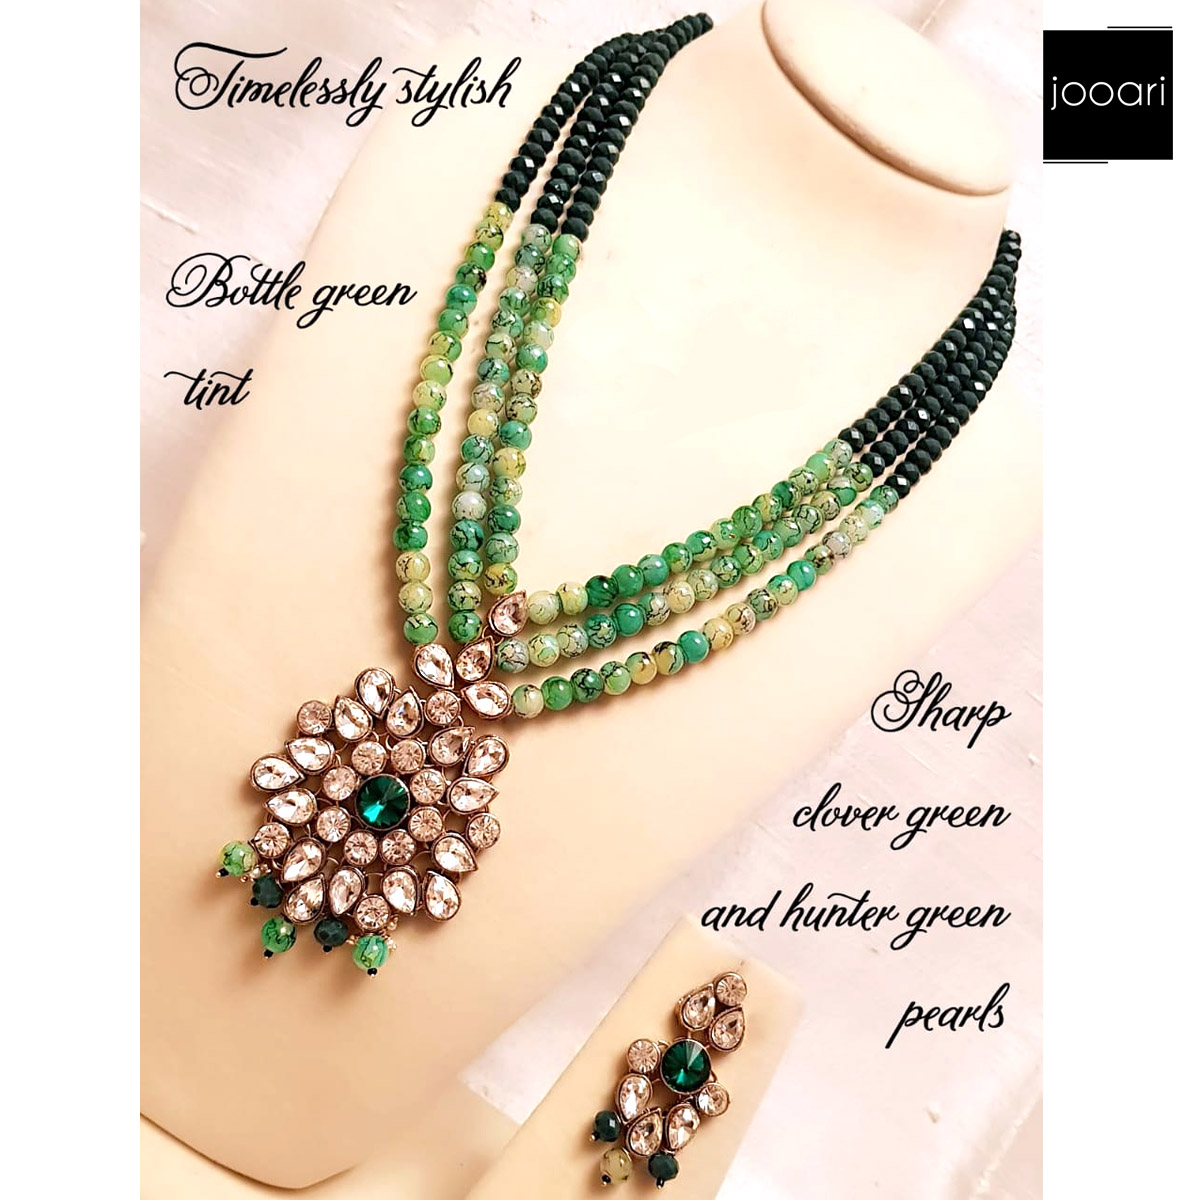 Bottle Green Tint Sharp Clover Green and Hunter Pearls Pendant for Party Girls